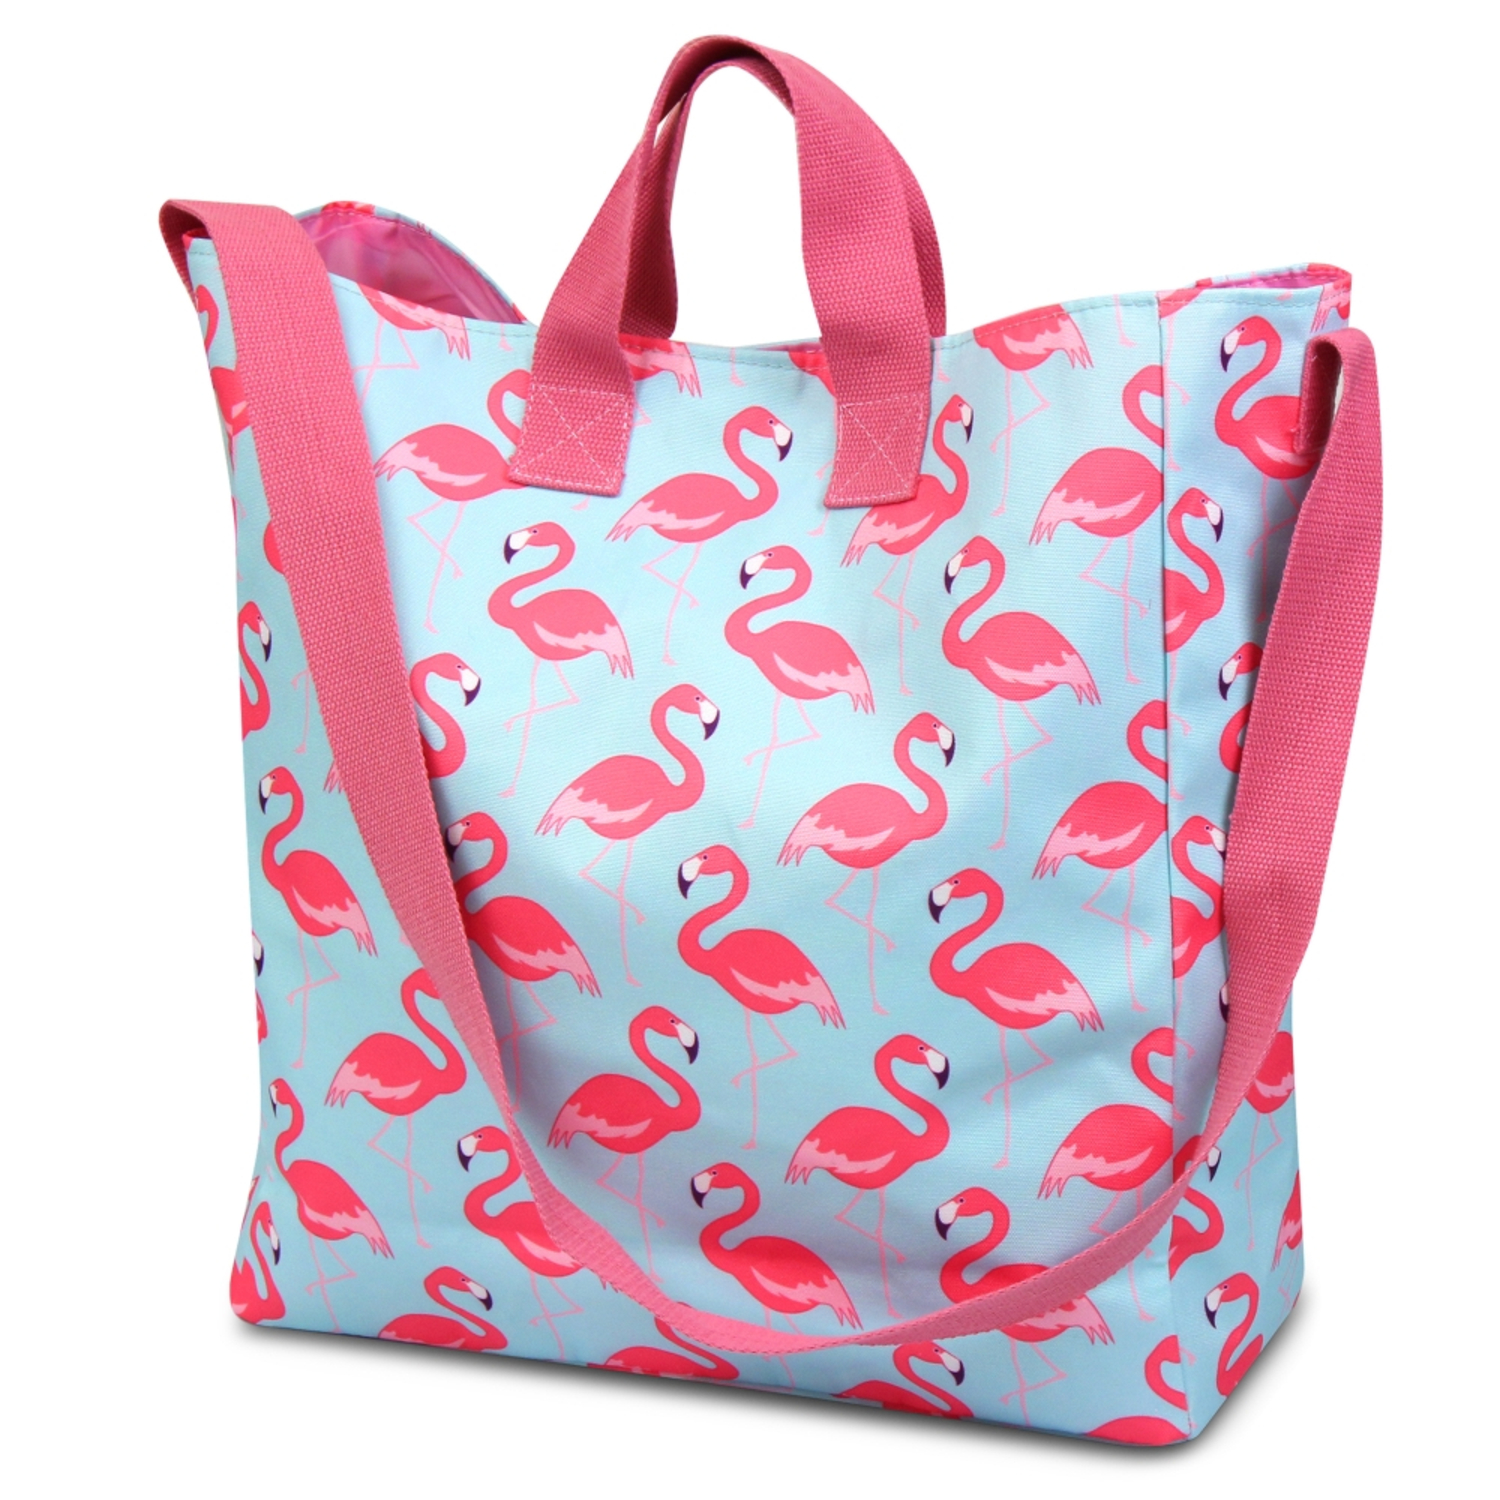 Zodaca Women Tote Carry Bag Handbag Crossbody Shoulder Messenger Bag for School Traveling Grocery Shopping - Pink Flamingo